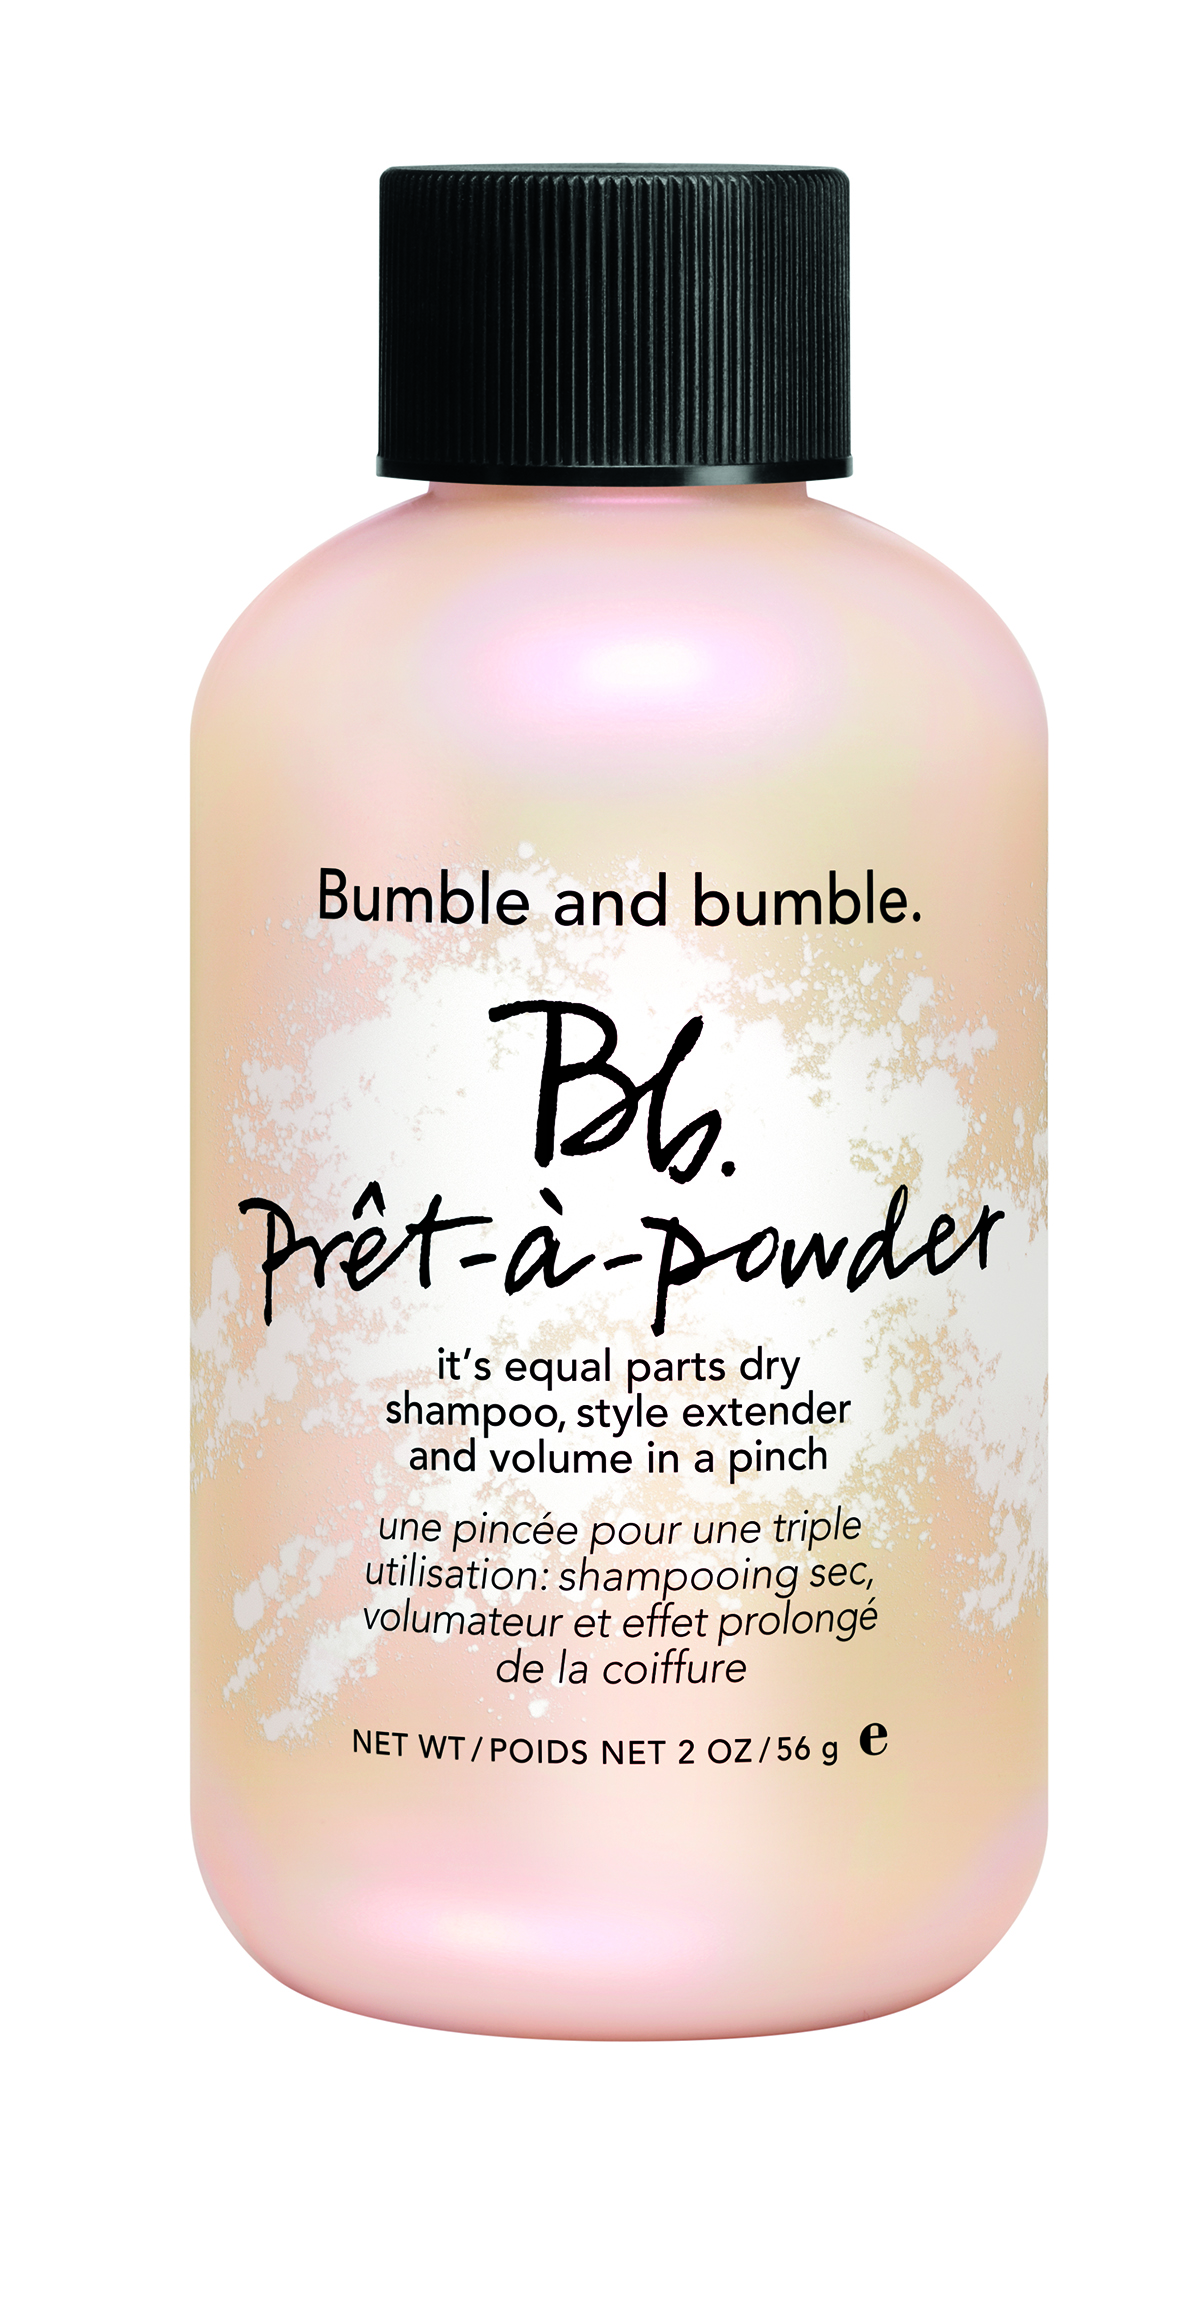 /Bumble and bumble  Prêt-à Powder is a unique dry shampoo, style extender and volumizer all-in-one. It creates instant lift at the roots and extends the life of a blow dry.